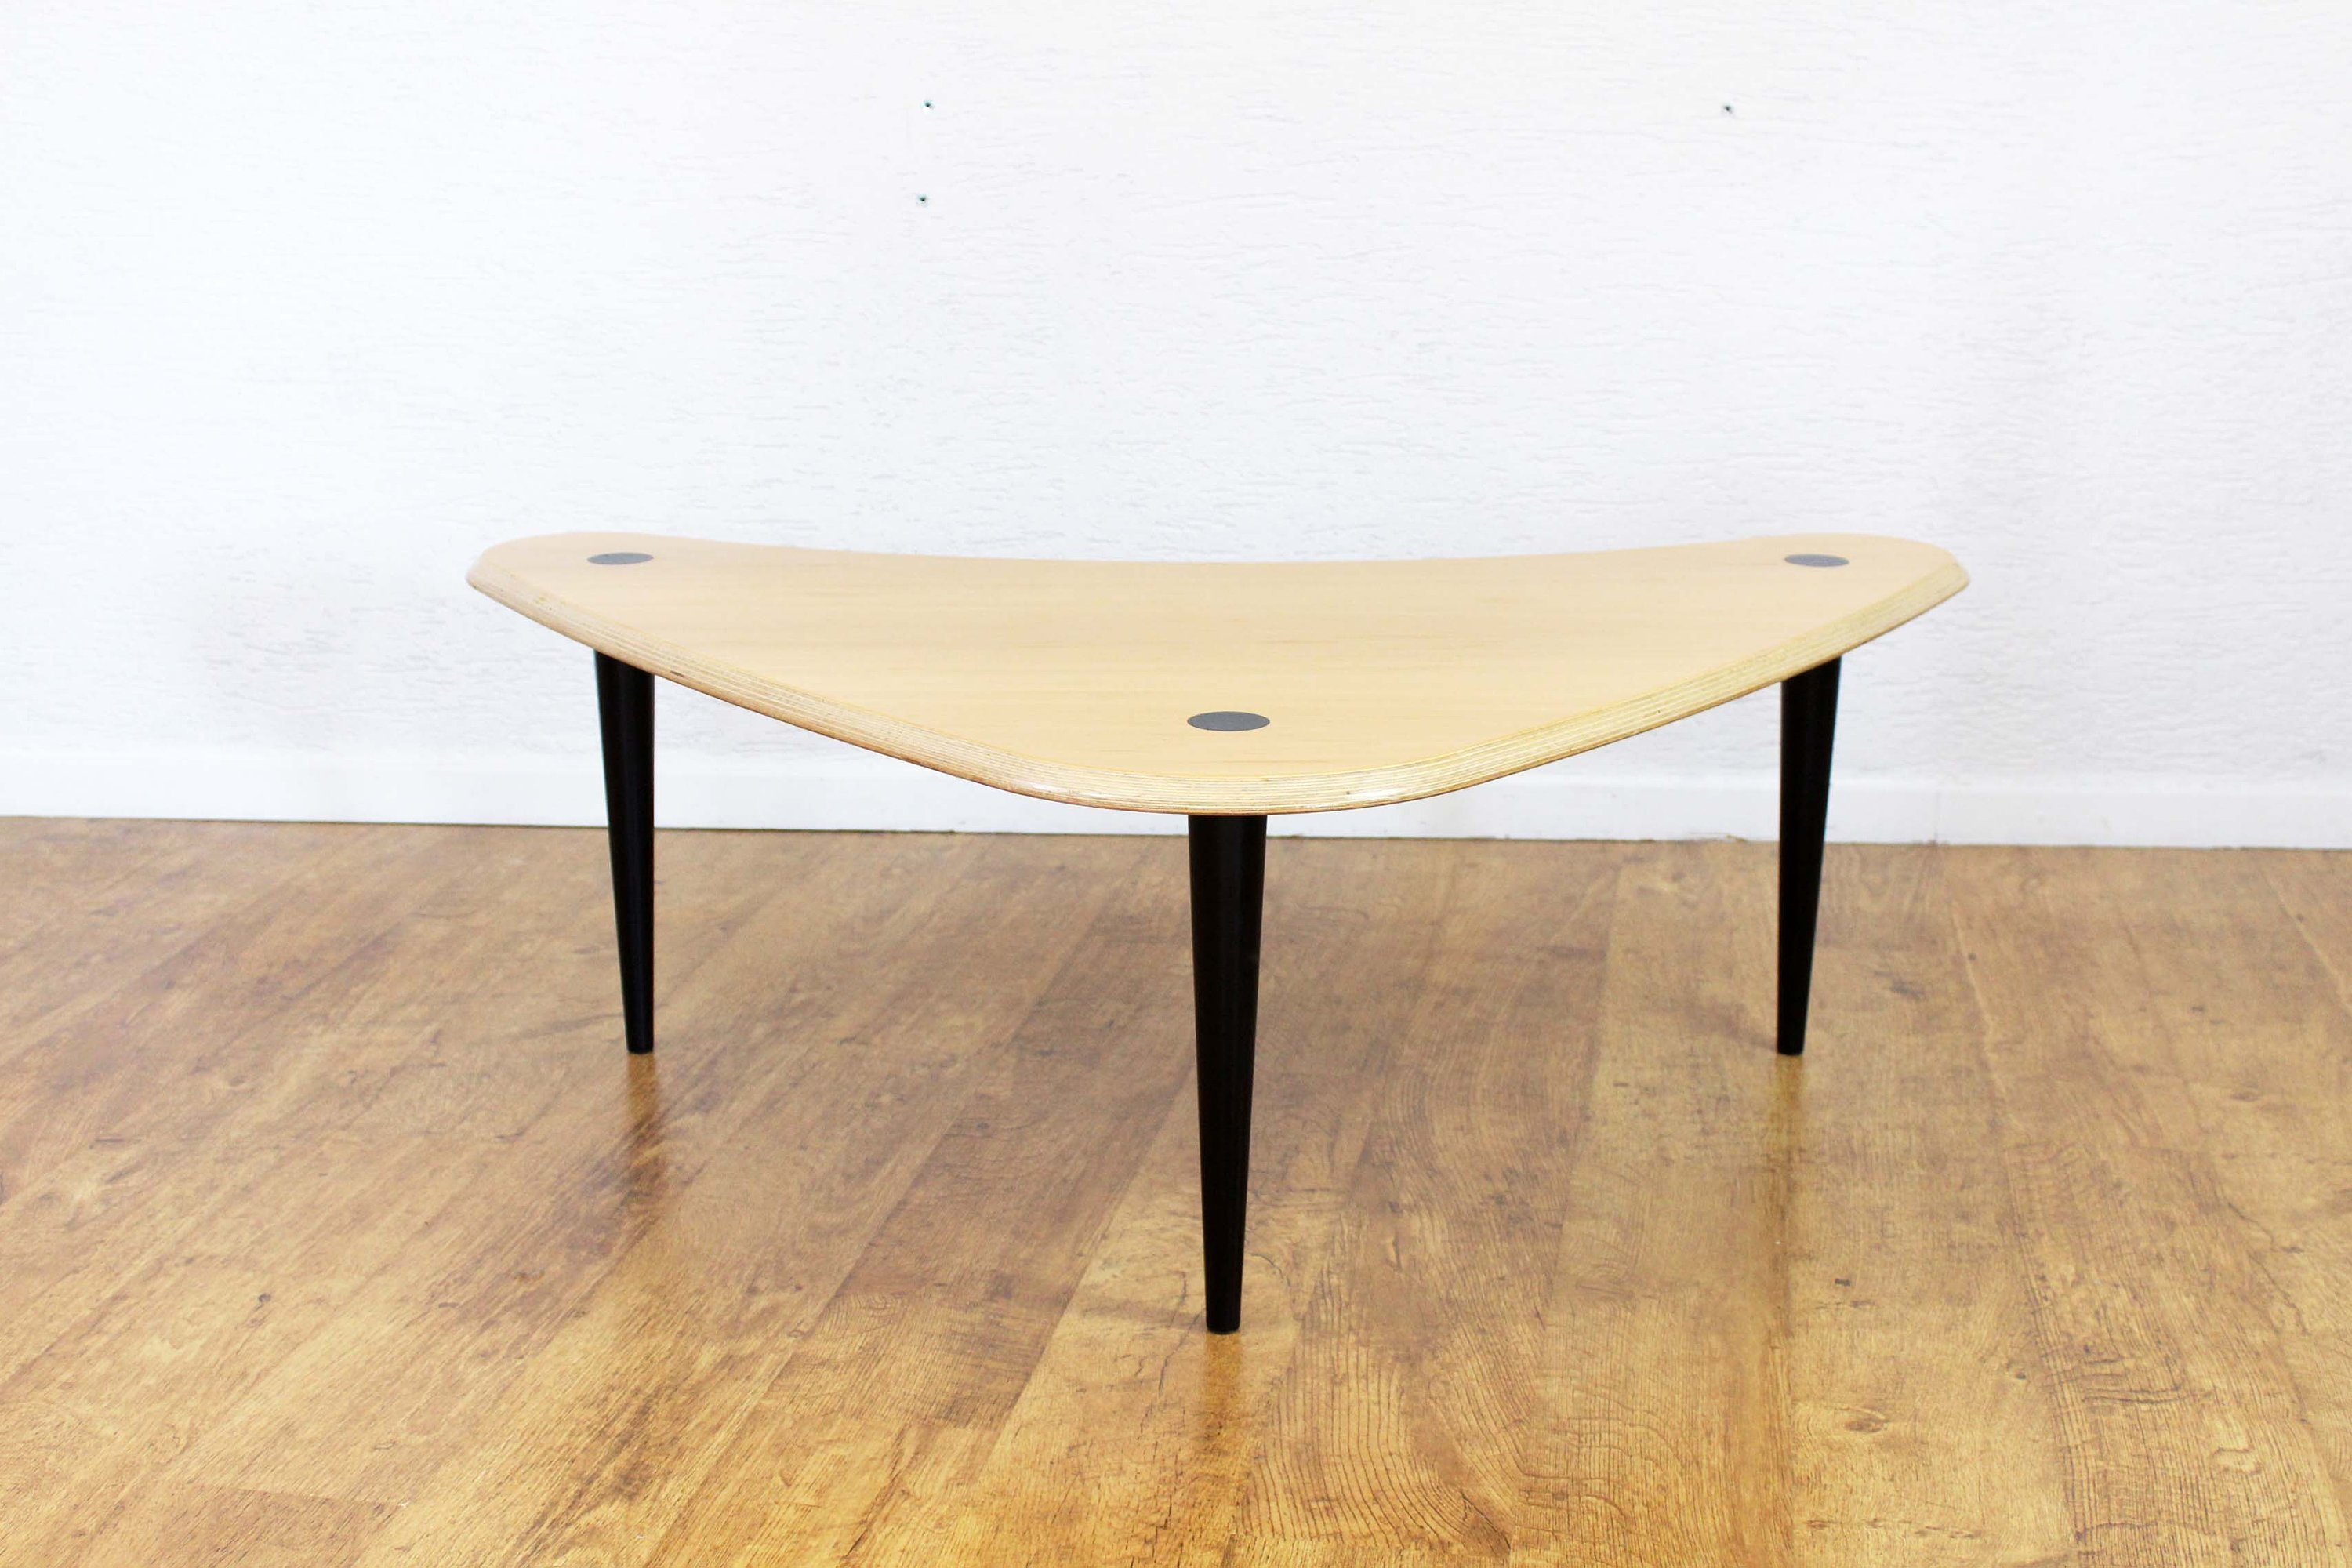 Stupendous Beautiful Coffee Table Boomerang Evergreenethics Interior Chair Design Evergreenethicsorg